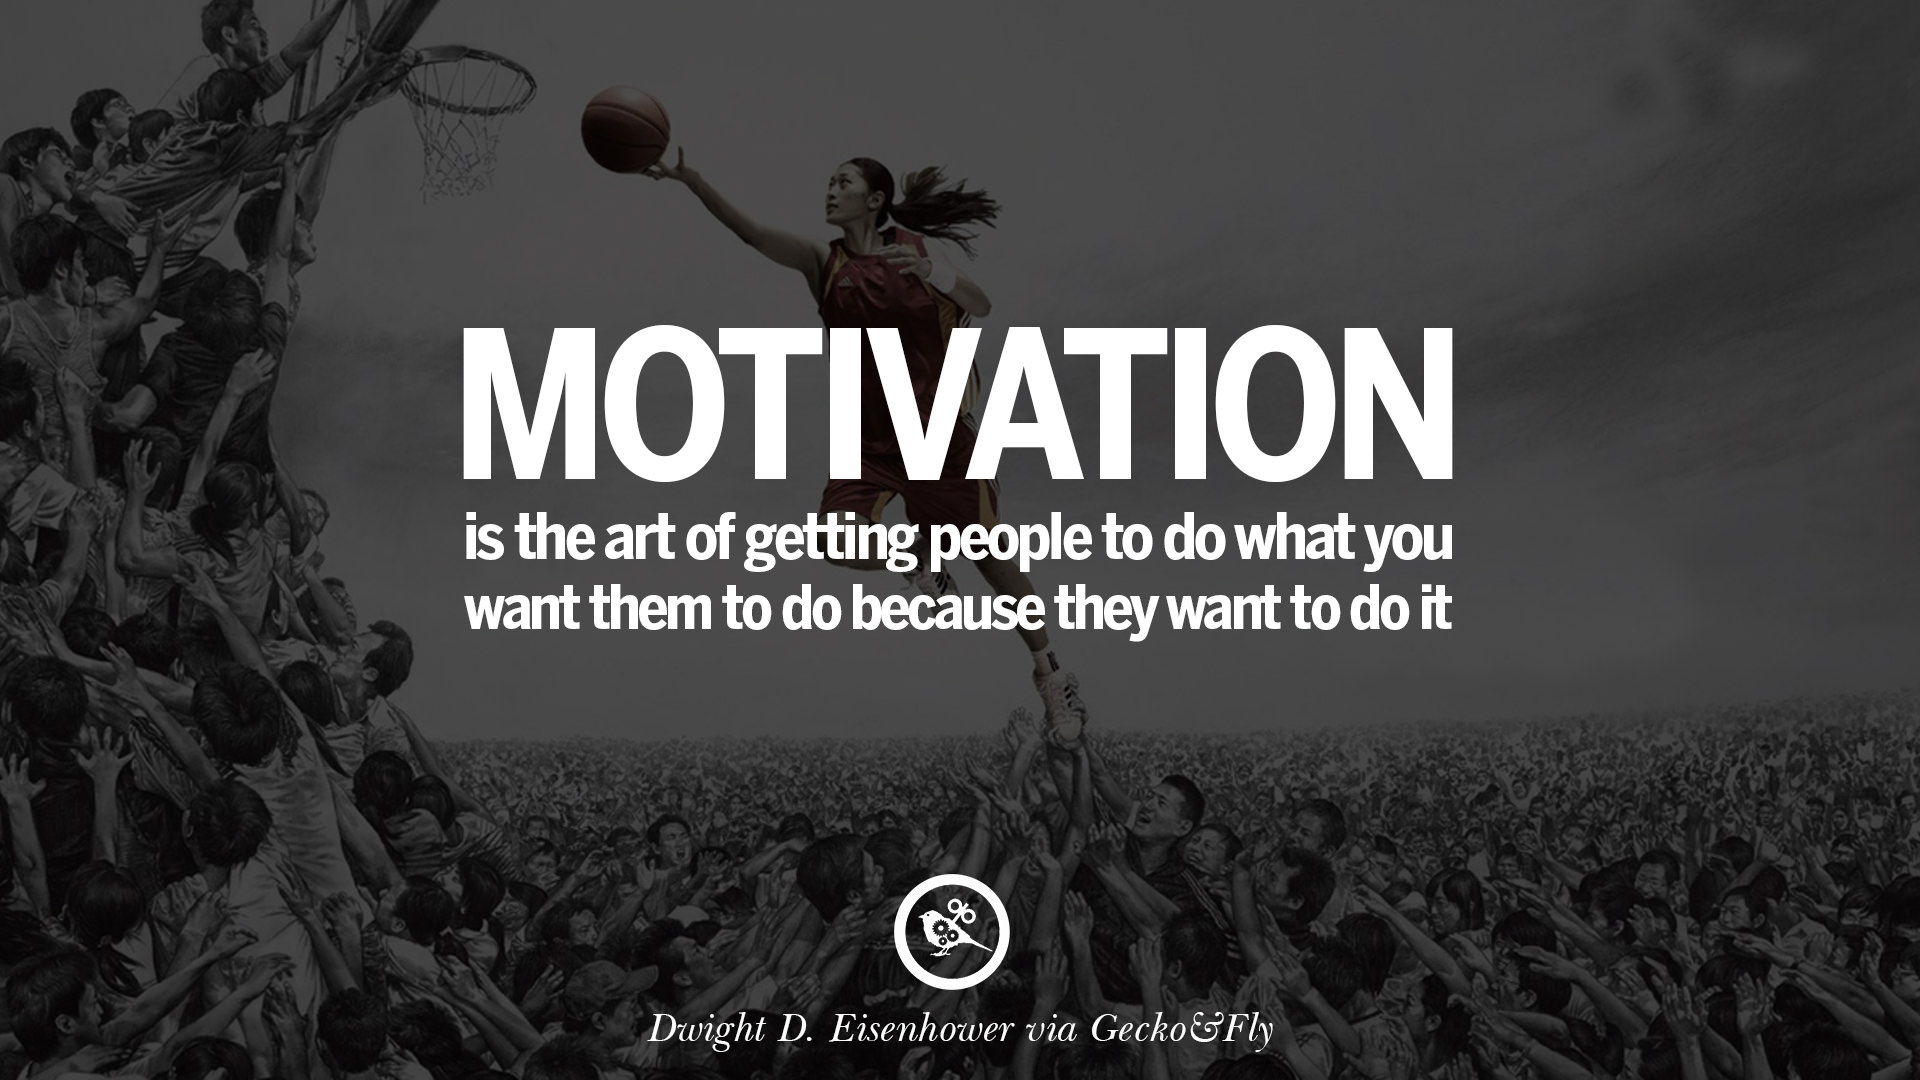 Poster Quotes About Life 20 Encouraging And Motivational Poster Quotes On Sports And Life